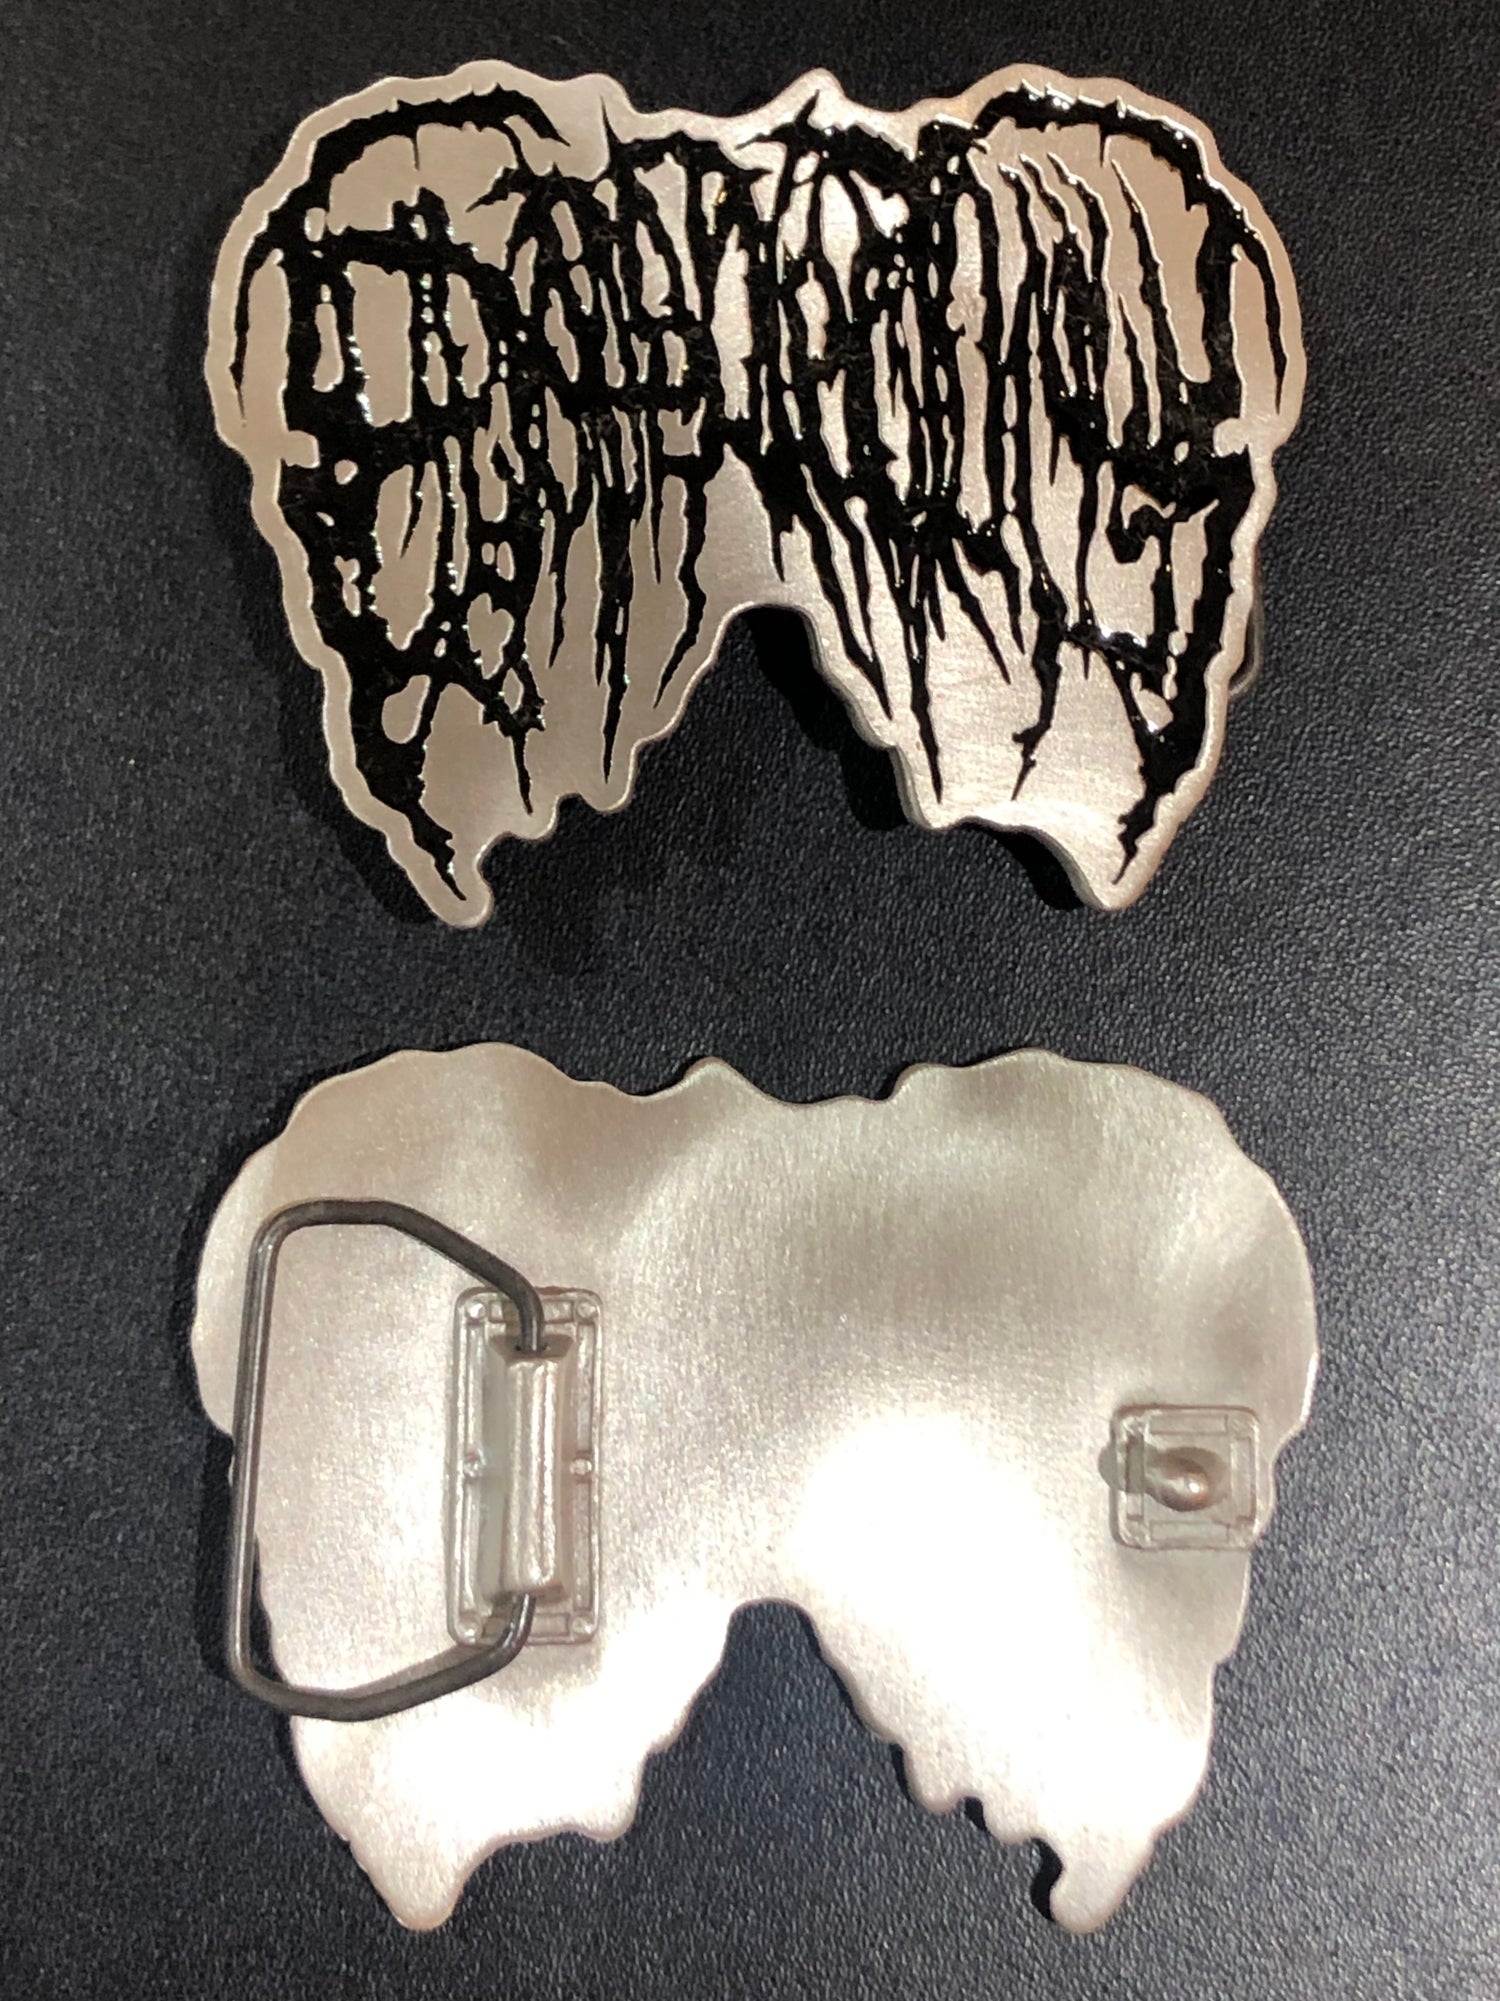 Officially Licensed Epicardiectomy belt buckles!!! | Fat ...